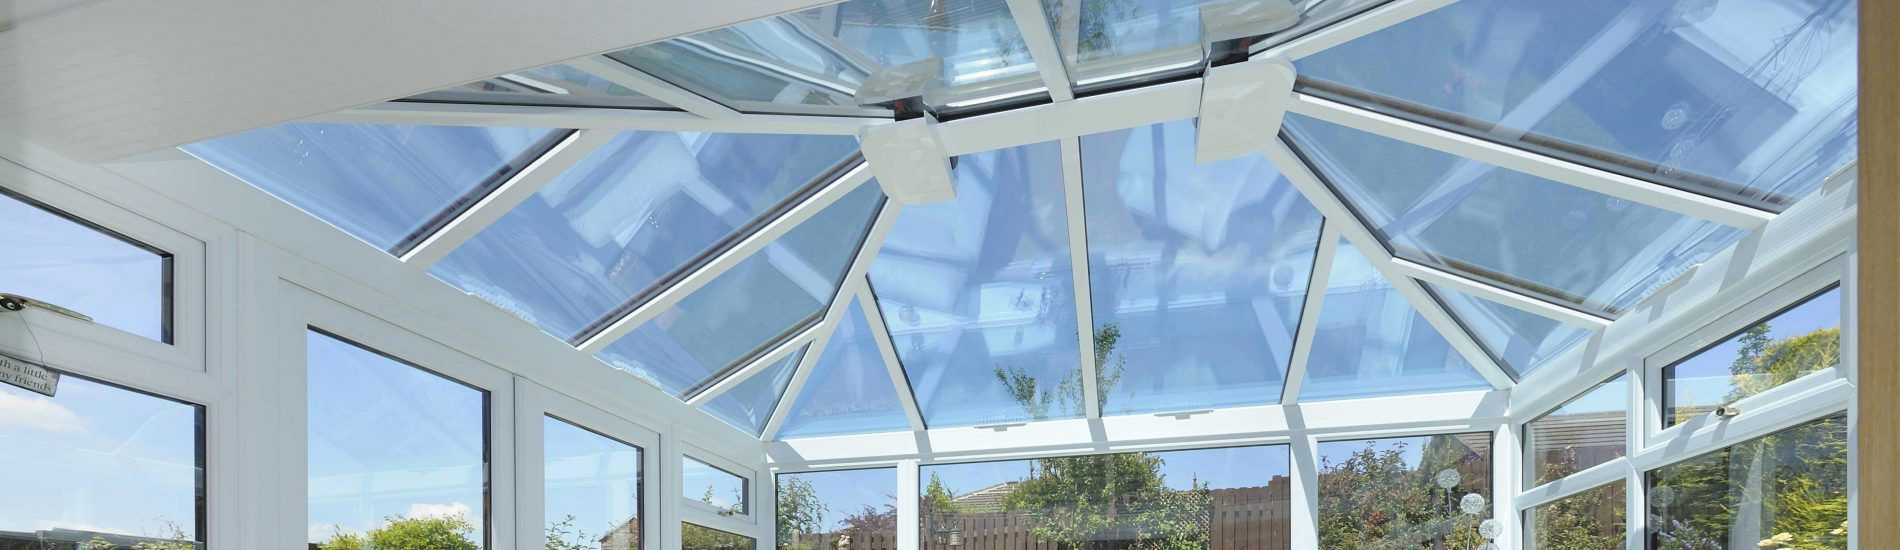 Classic uPVC Conservatory Manchester